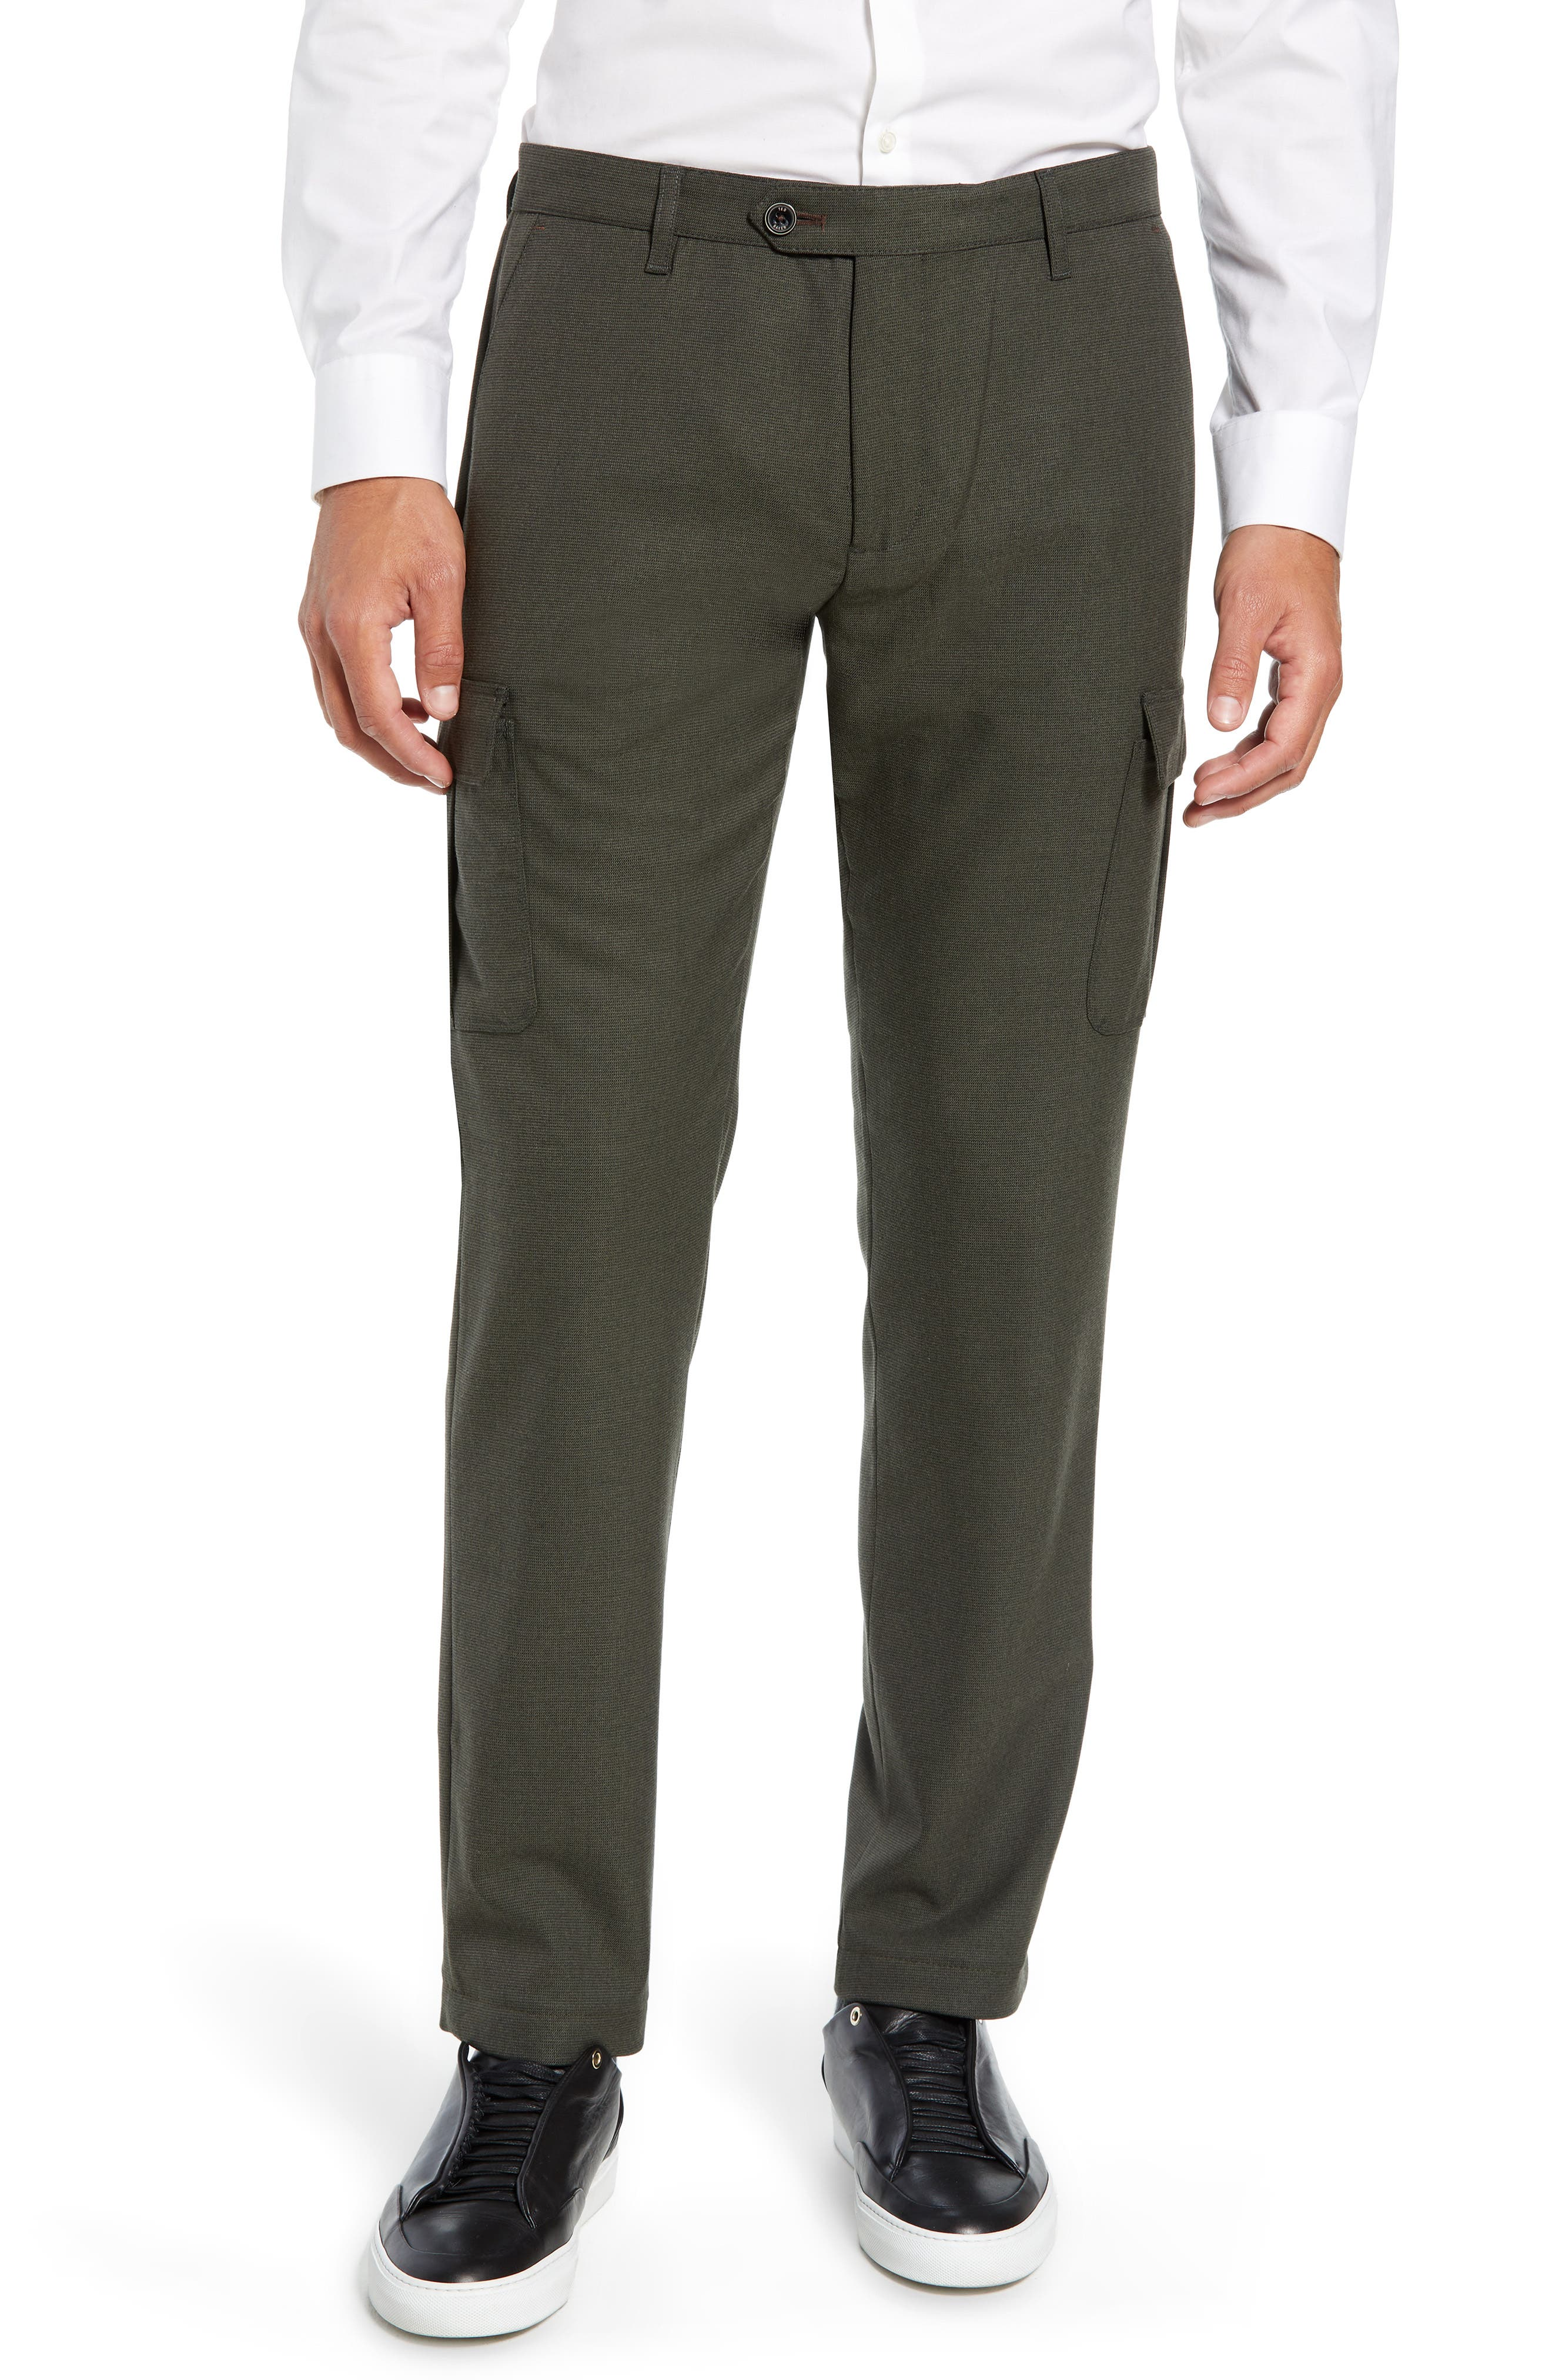 Zakery Slim Fit Utility Cargo Trousers,                         Main,                         color, KHAKI